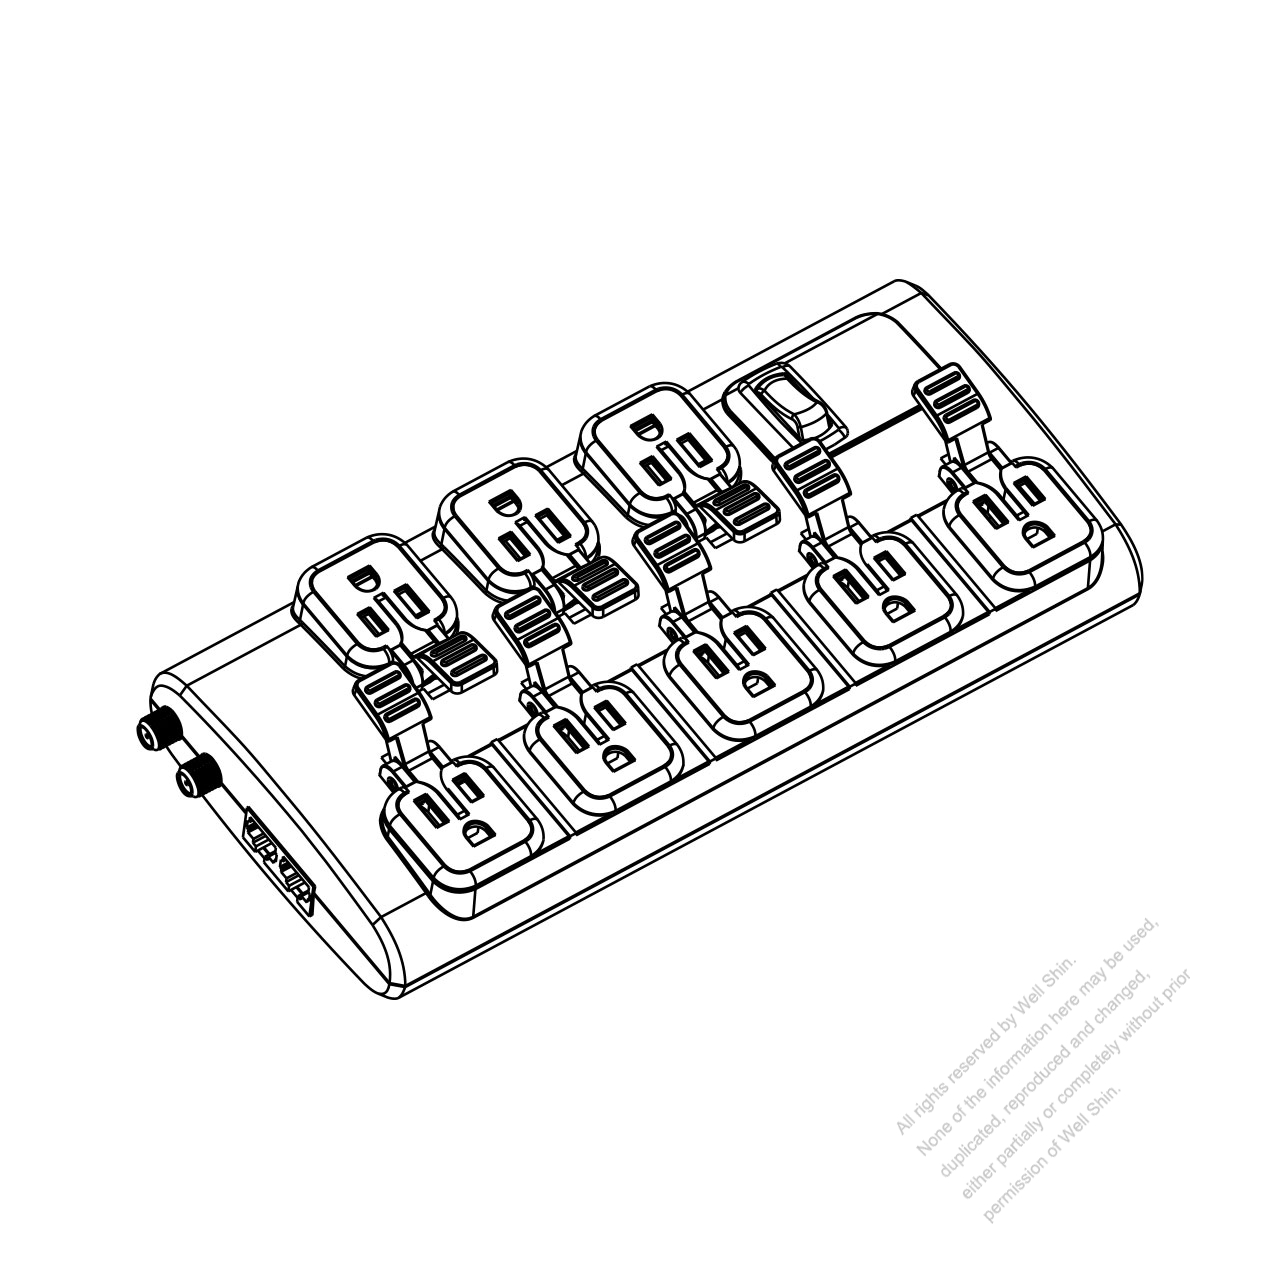 Tripp Lite Power Supply Accessory Ps361220 moreover 6083901 further B012EIW6HK as well Wiring Of L14 And Nema 30r Diagram together with Index. on nema 5 15r connector